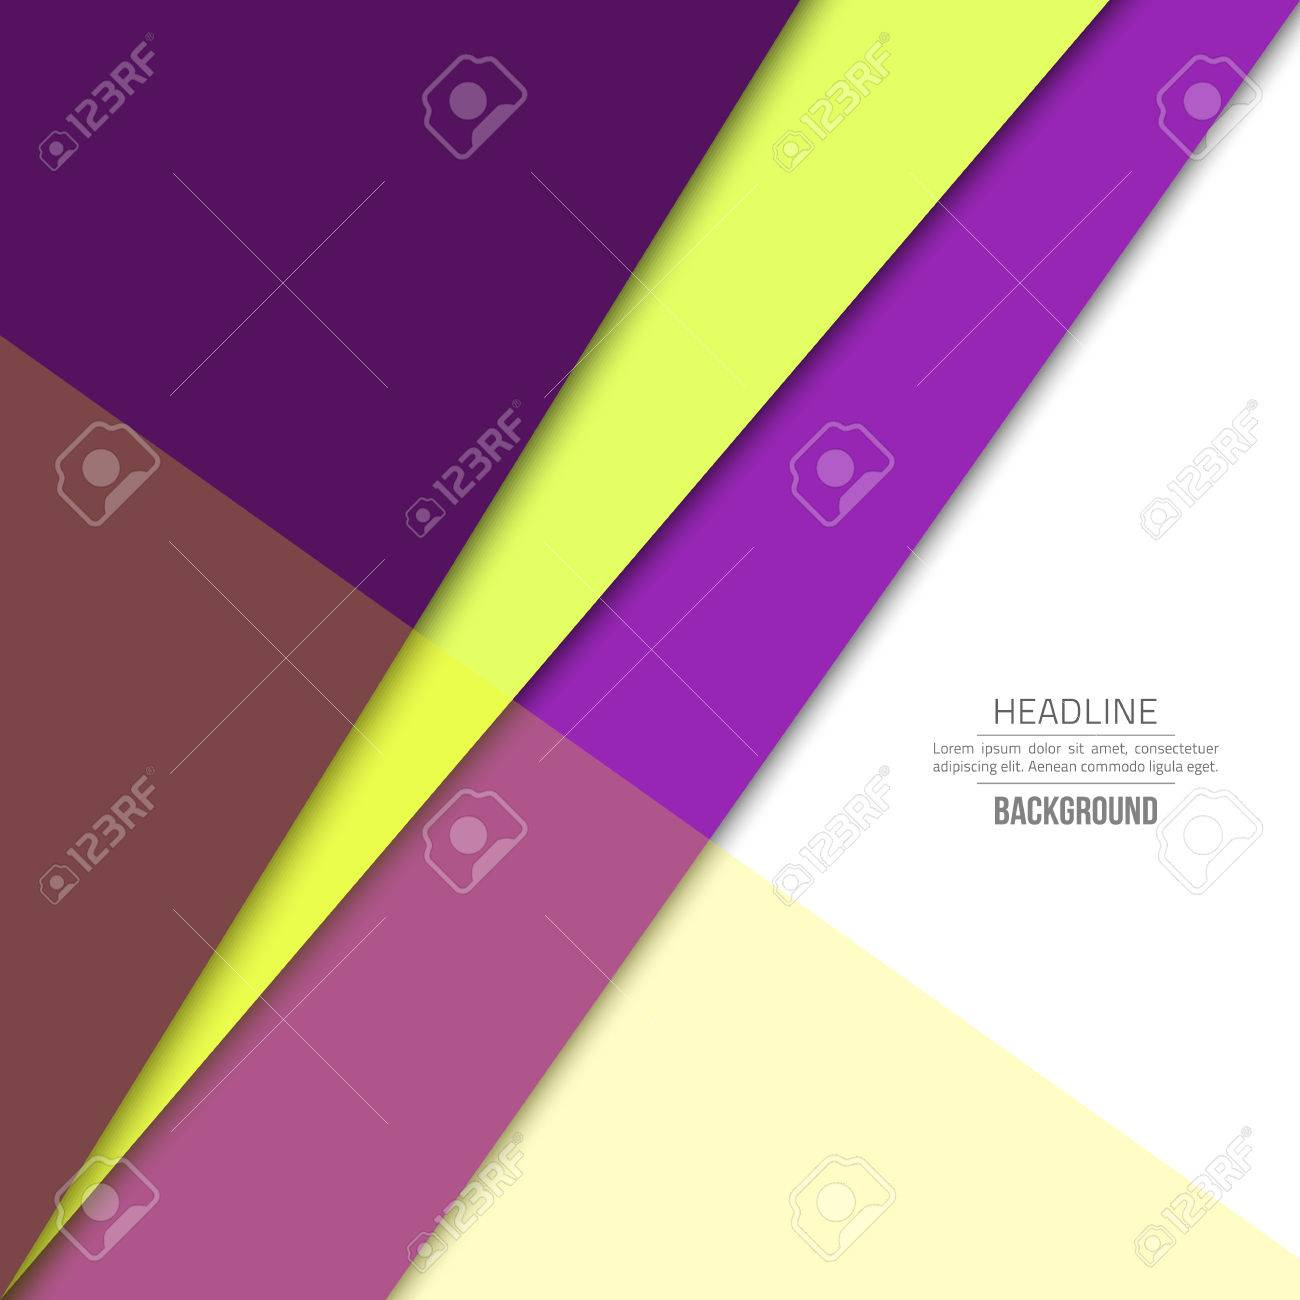 Violet Material Design Background Flat Template Fashion Background